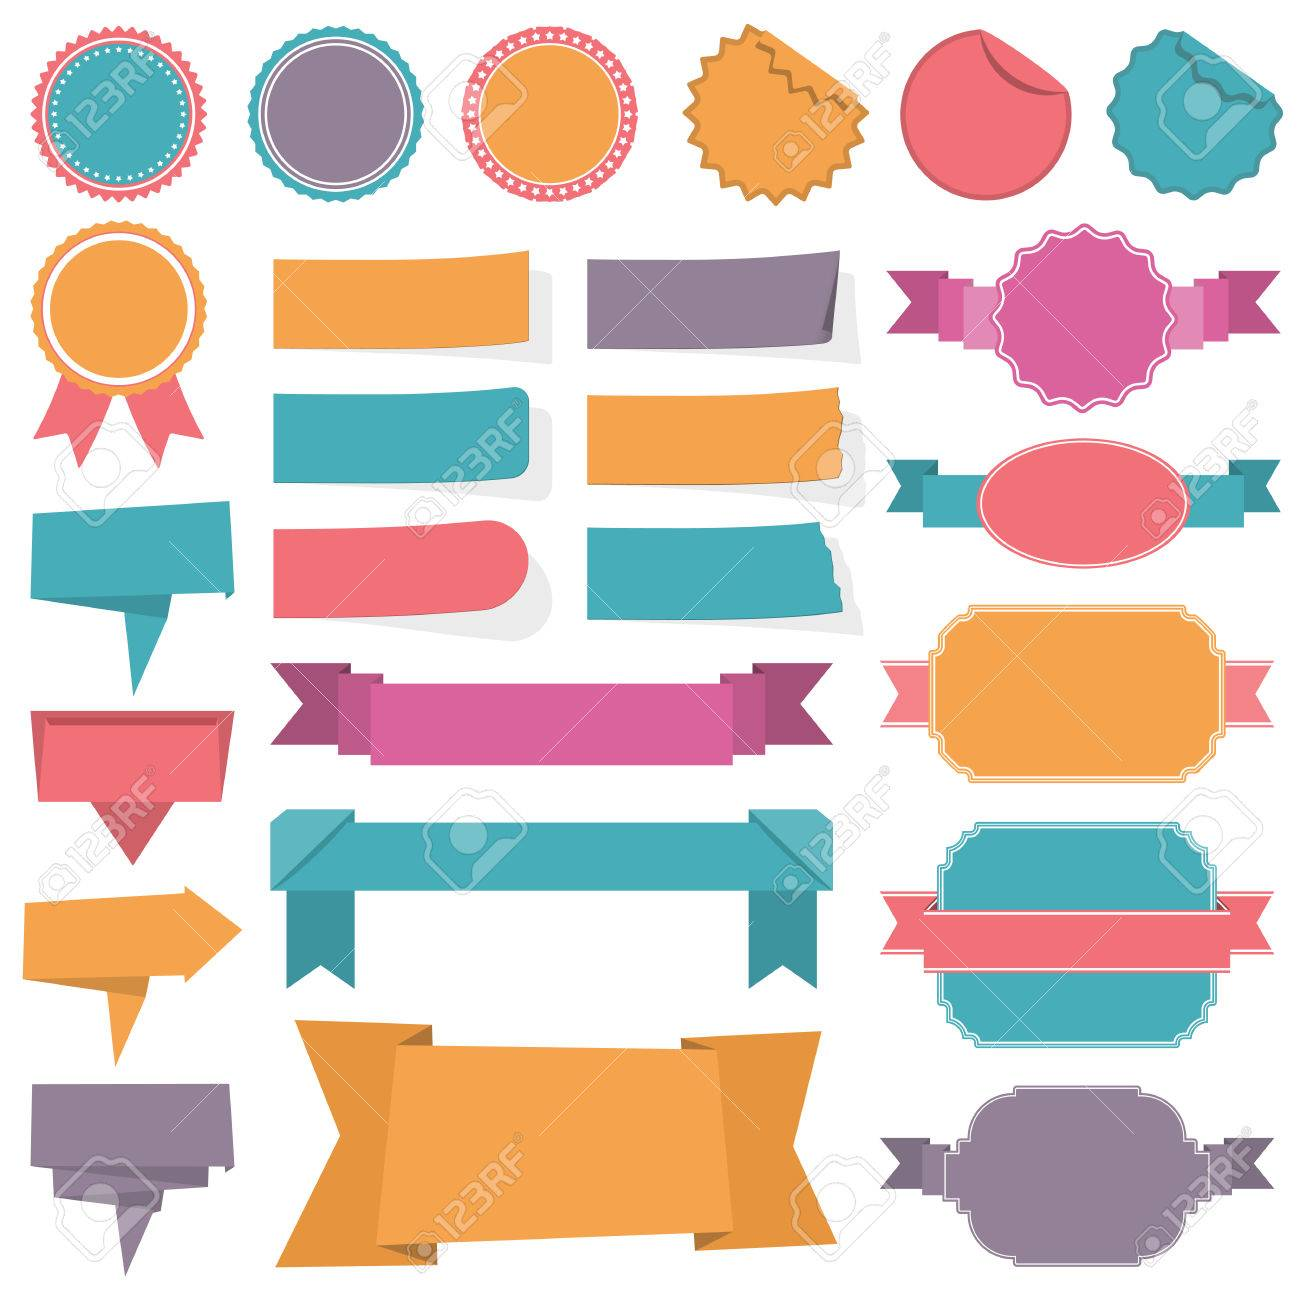 Collection of different labels, banners and ribbons - 38963147